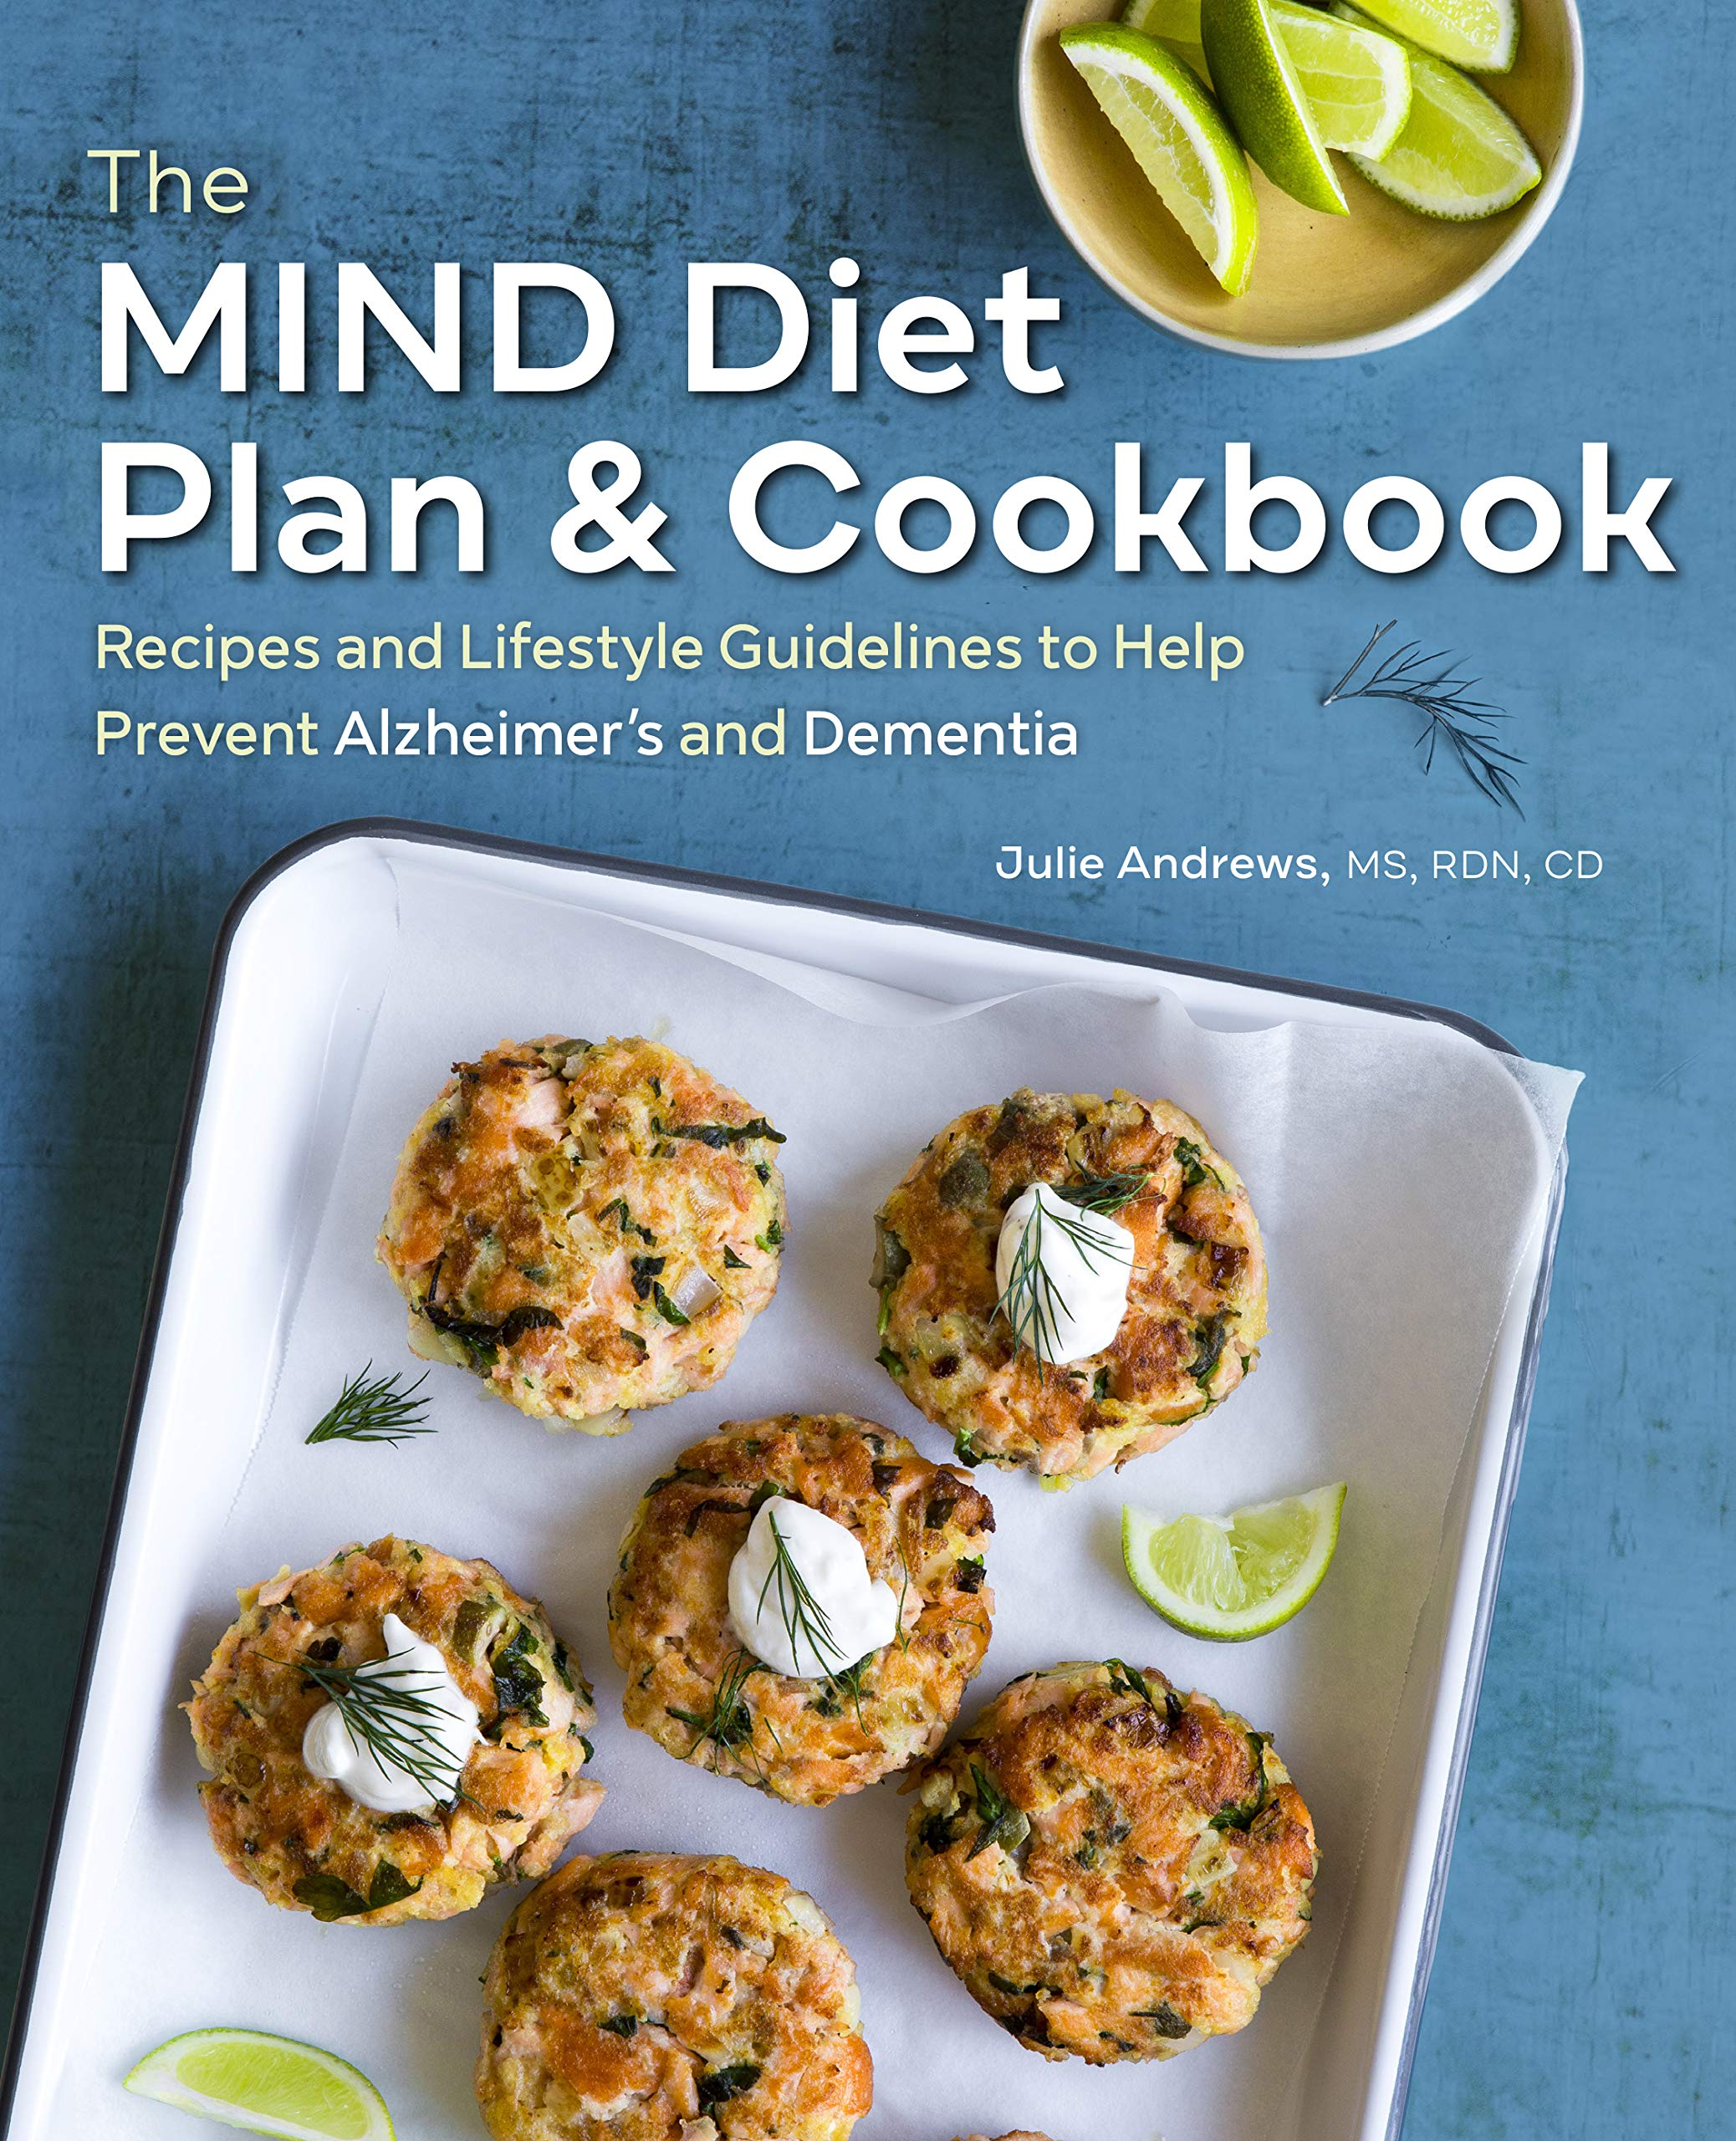 Image OfThe MIND Diet Plan And Cookbook: Recipes And Lifestyle Guidelines To Help Prevent Alzheimer's And Dementia